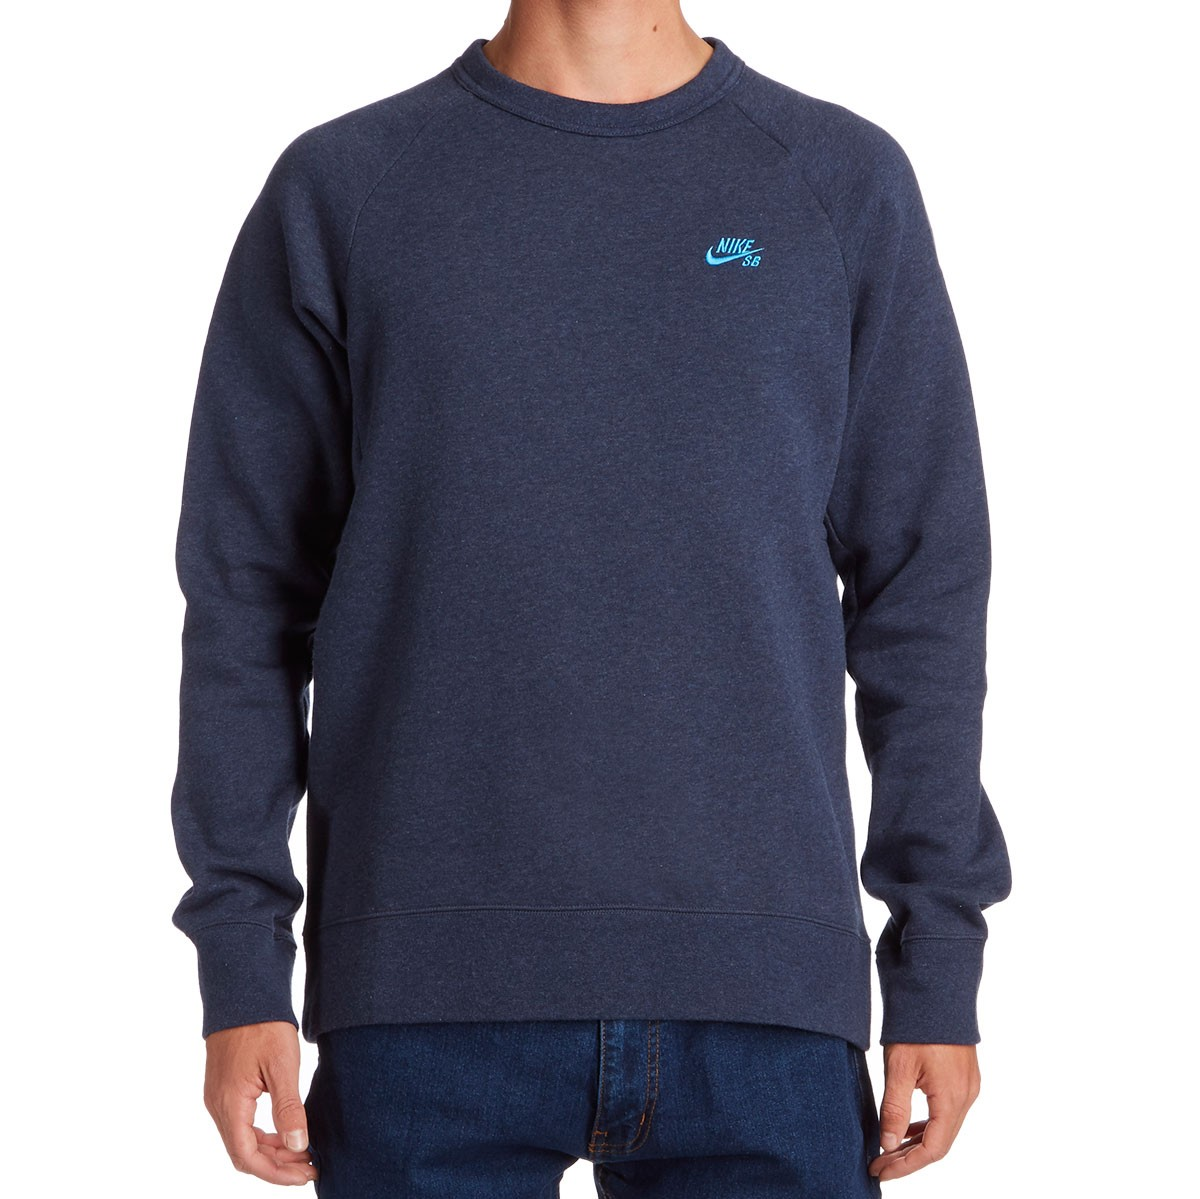 Photo Blue Obsidian Sb Nike Sweatshirt Icon Heatherlight wqxgZwB0O